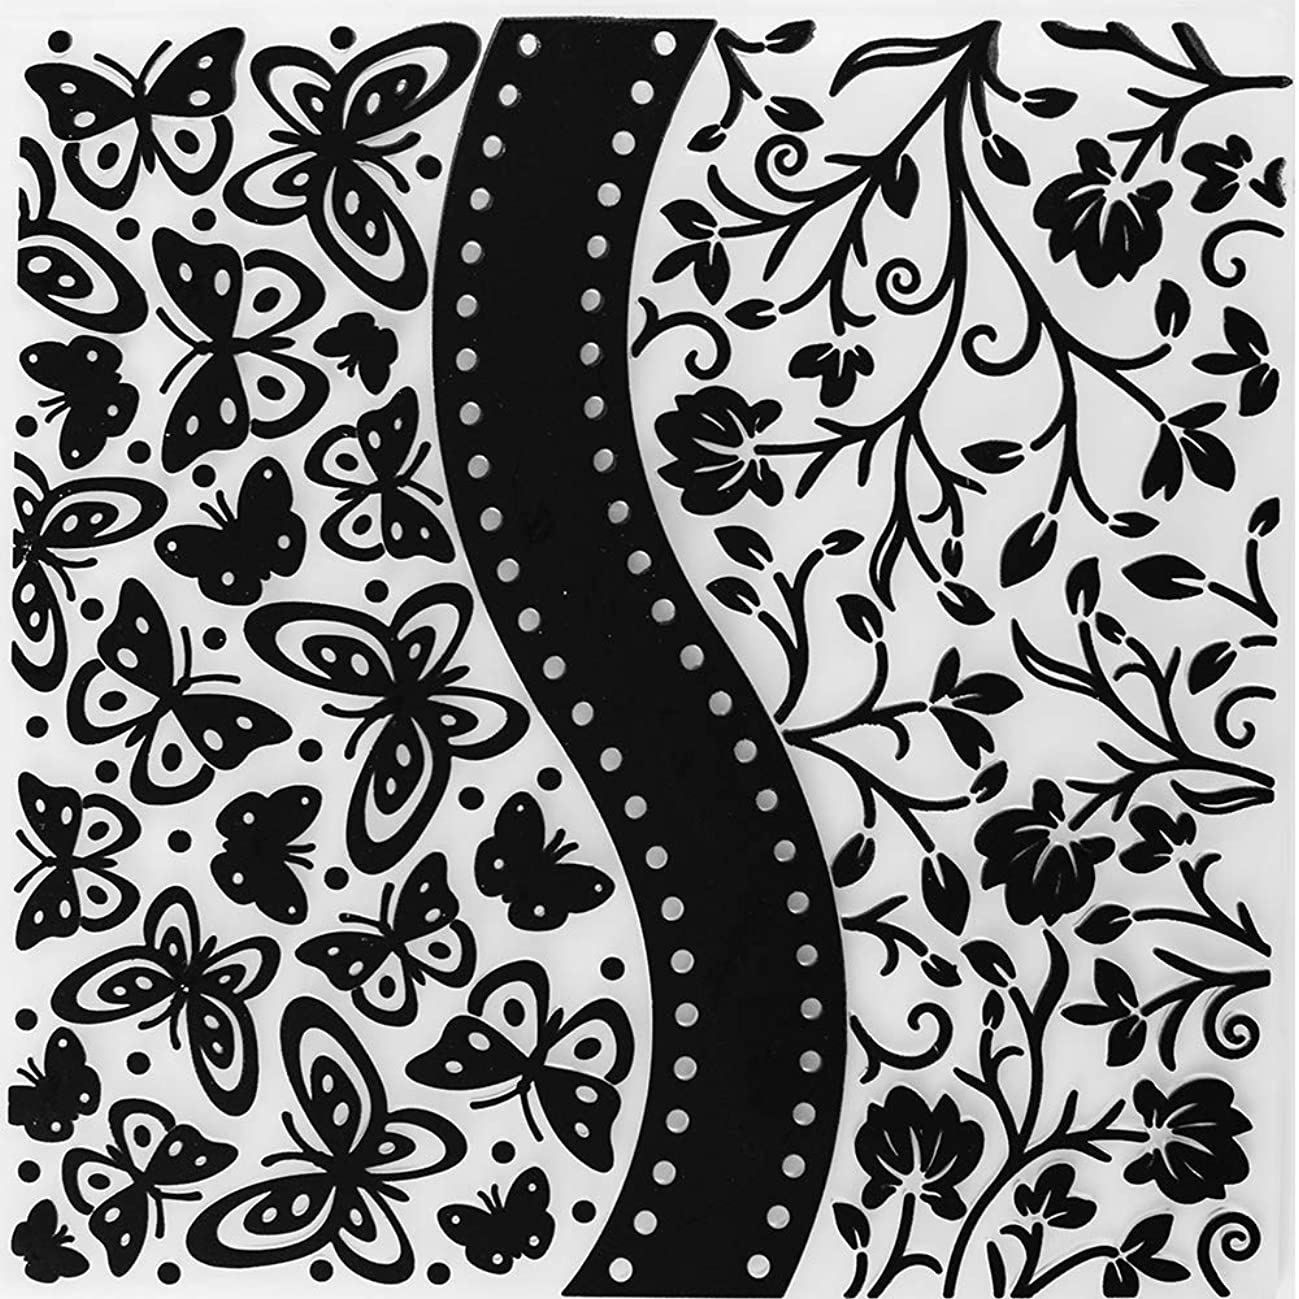 MaGuo Butterflies Flowers Plastic Embossing Folder Template for Card Making Scrapbooking DIY Crafts